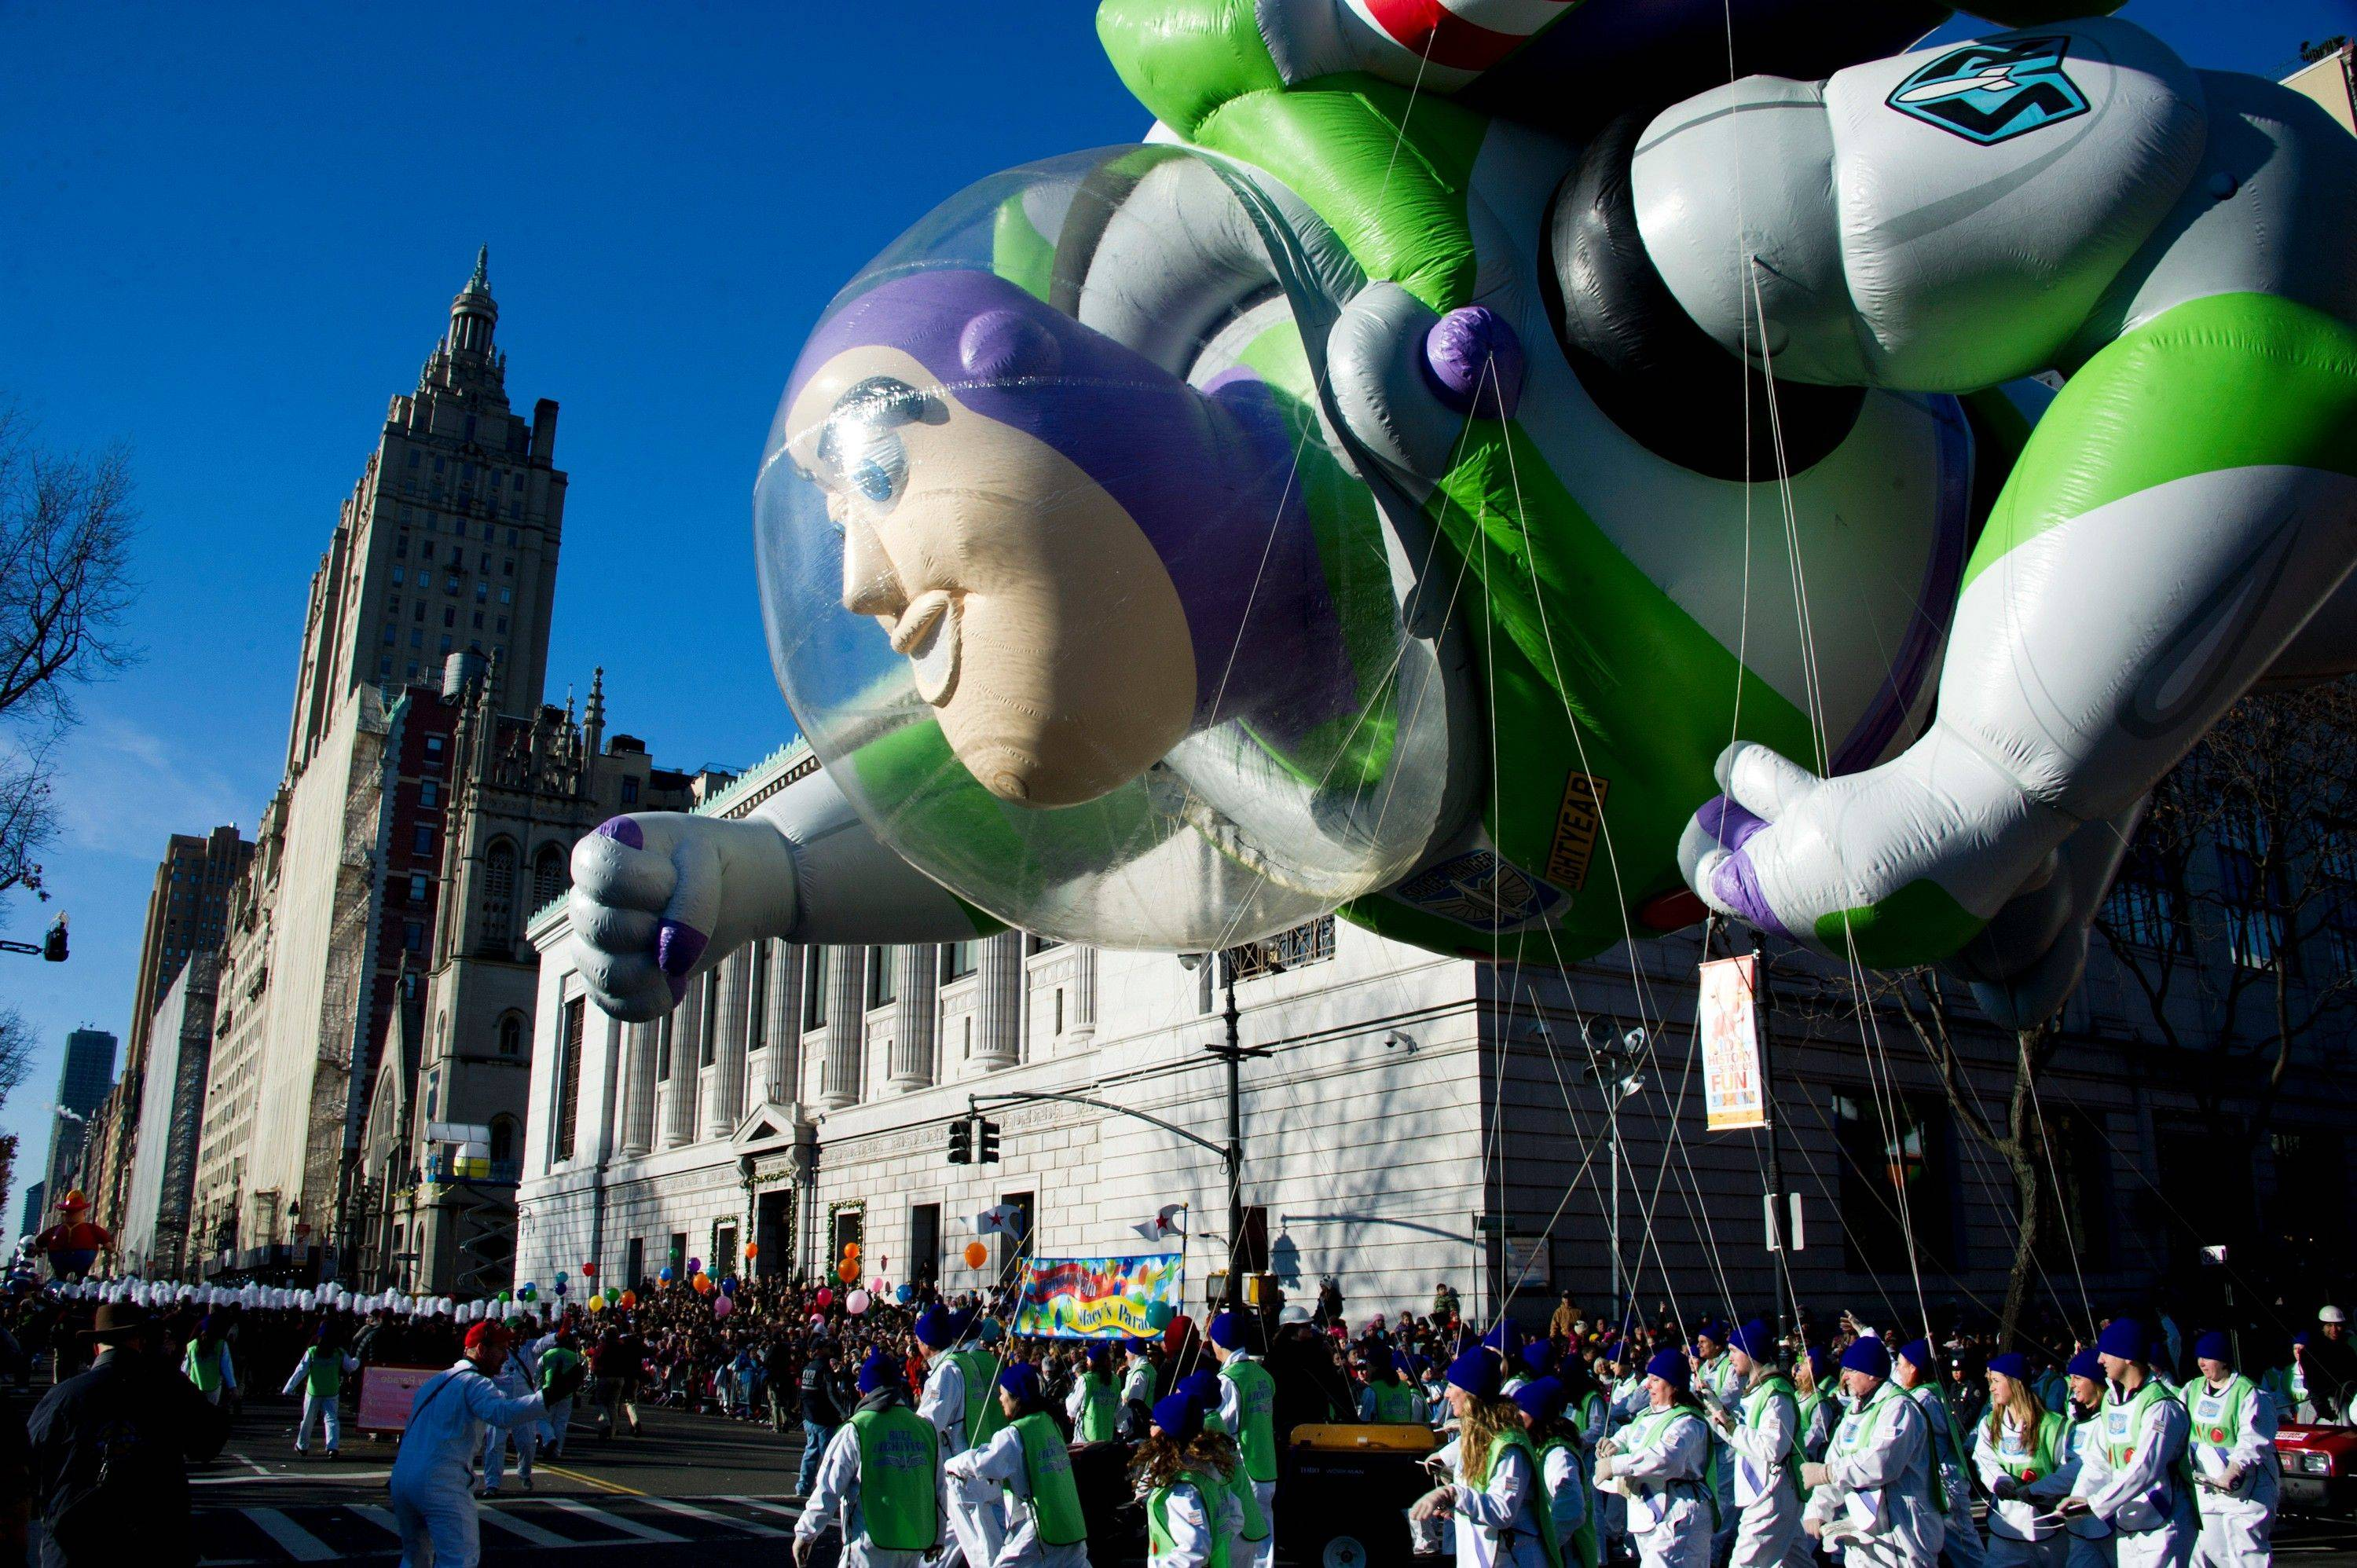 The Buzz Lightyear balloon floats in the Macy's Thanksgiving Day Parade in New York, Thursday, Nov. 24, 2011. A jetpack-wearing monkey and a freakish creation from filmmaker Tim Burton are two of the big new balloons that will make their inaugural appearances in front of millions of people at this year's parade.